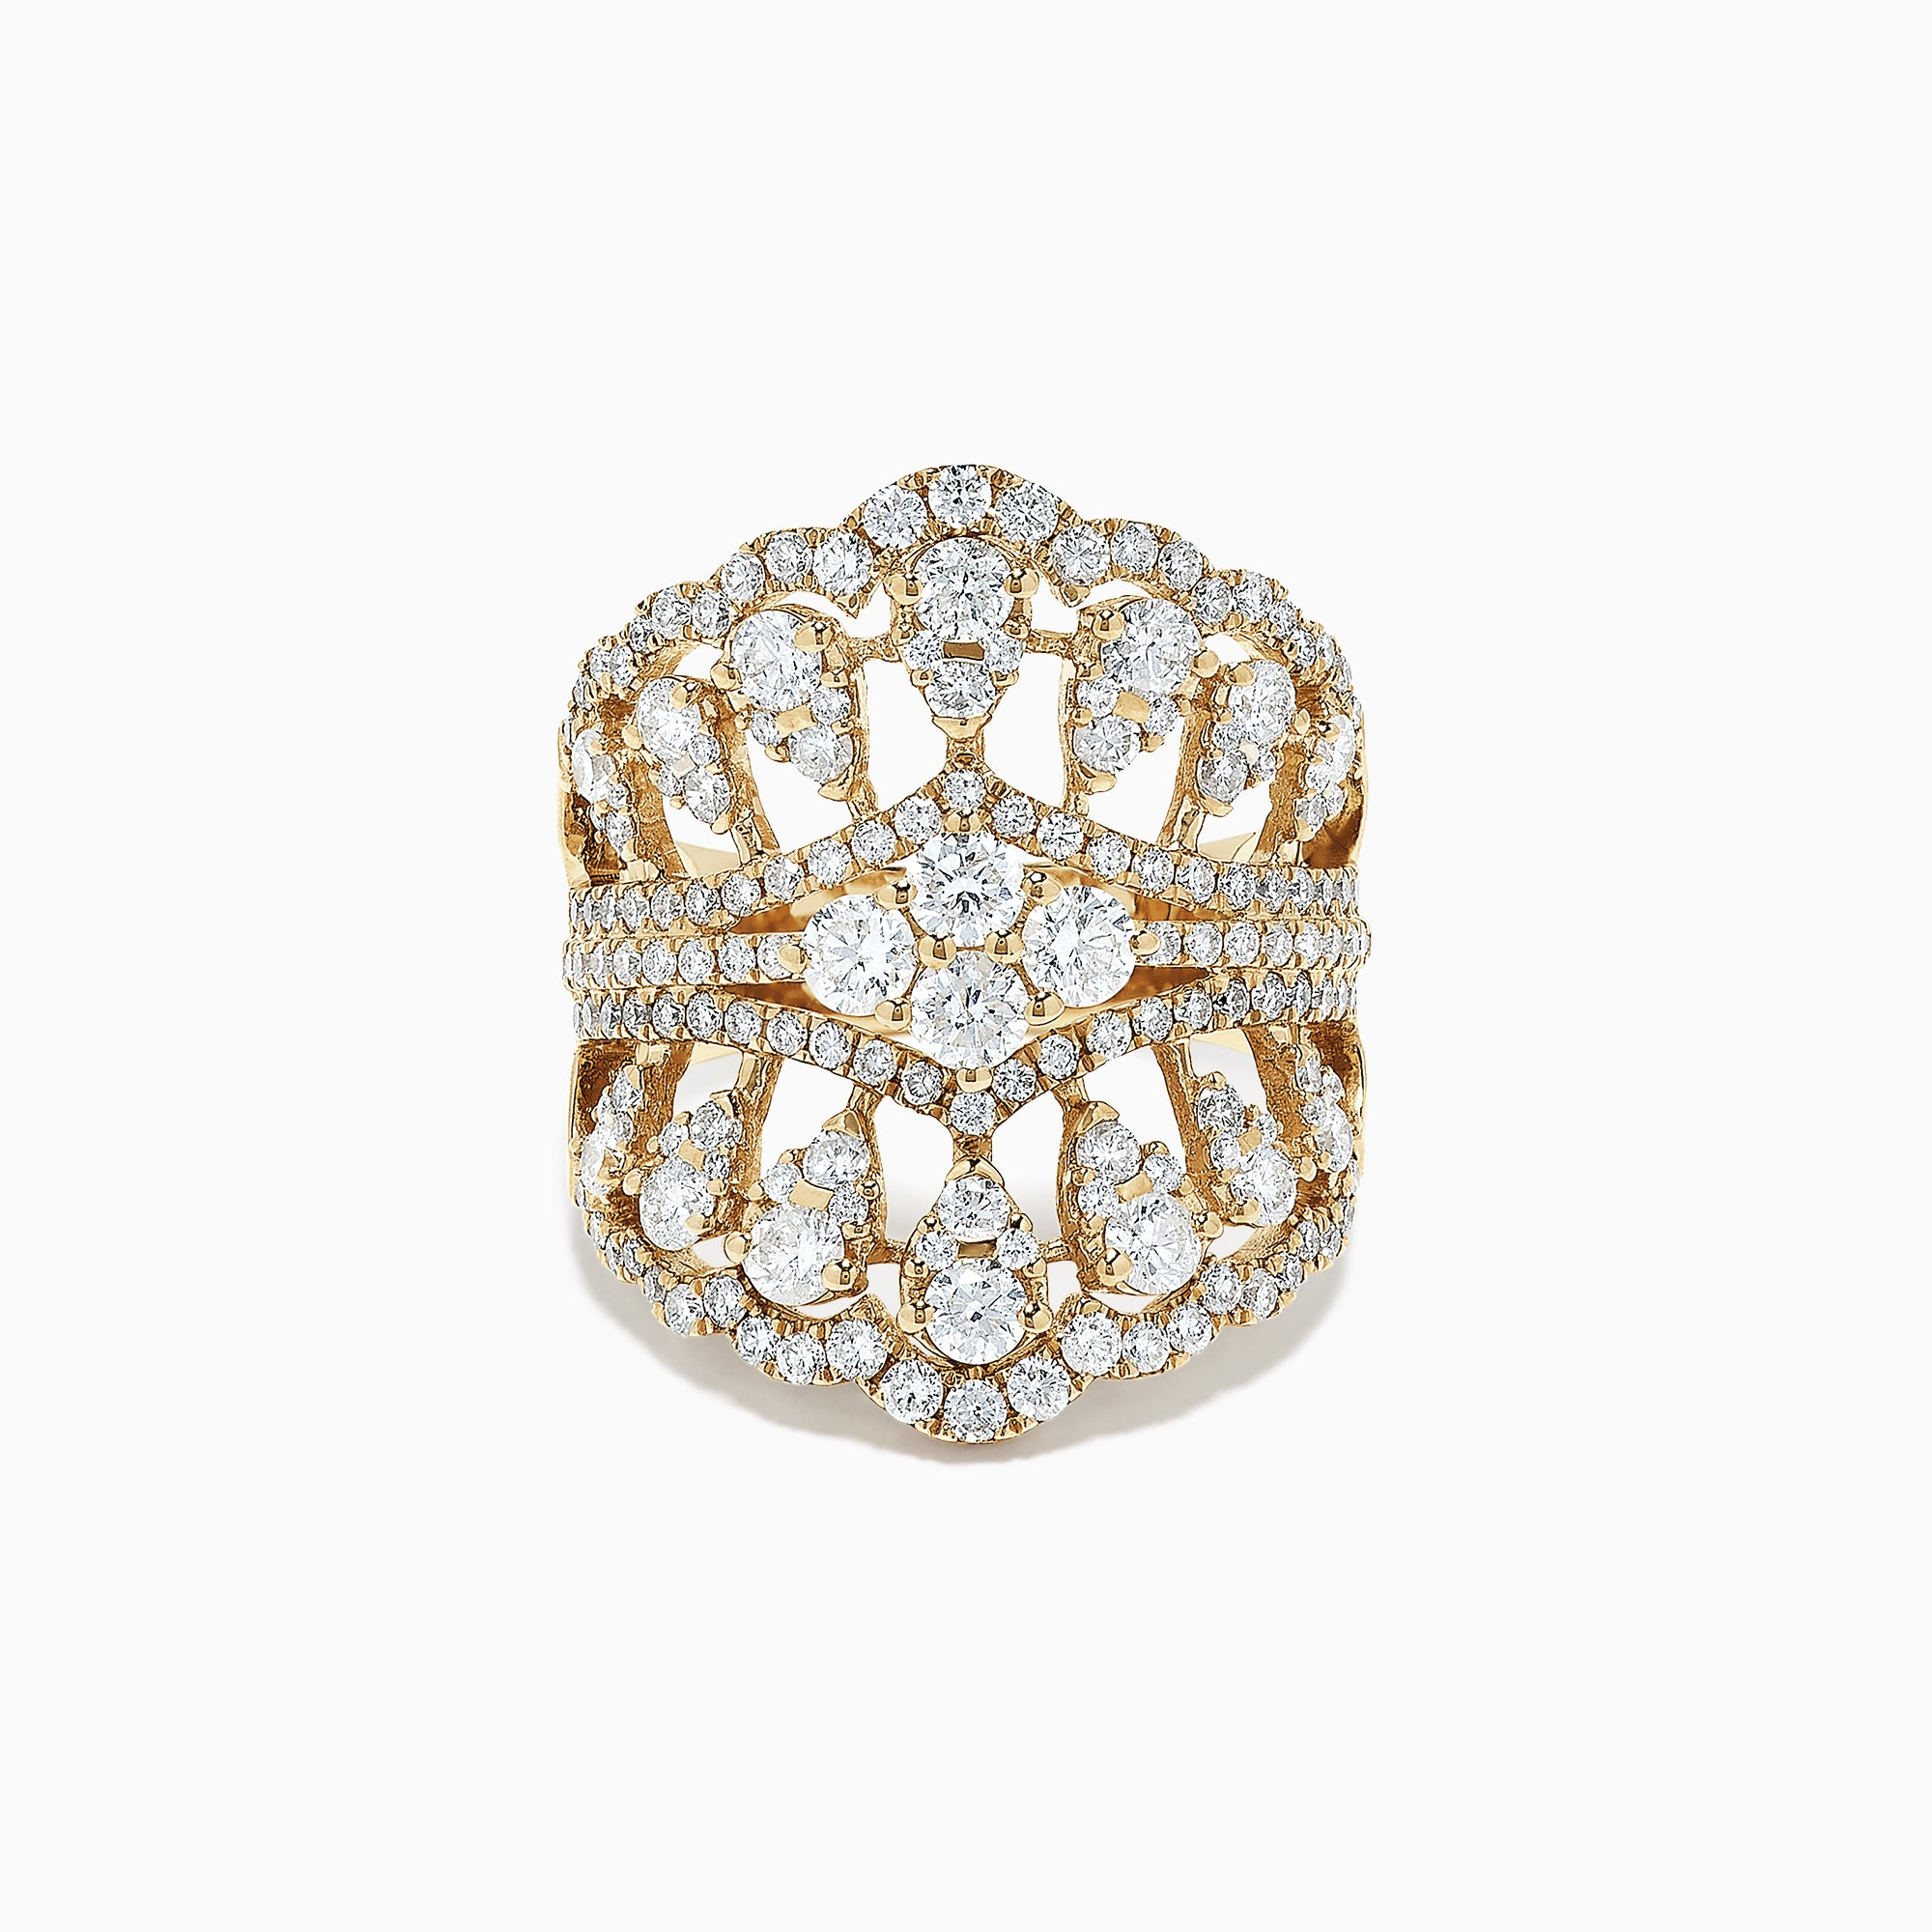 Effy D'Oro 14K Yellow Gold Diamond Ring, 2.69 TCW